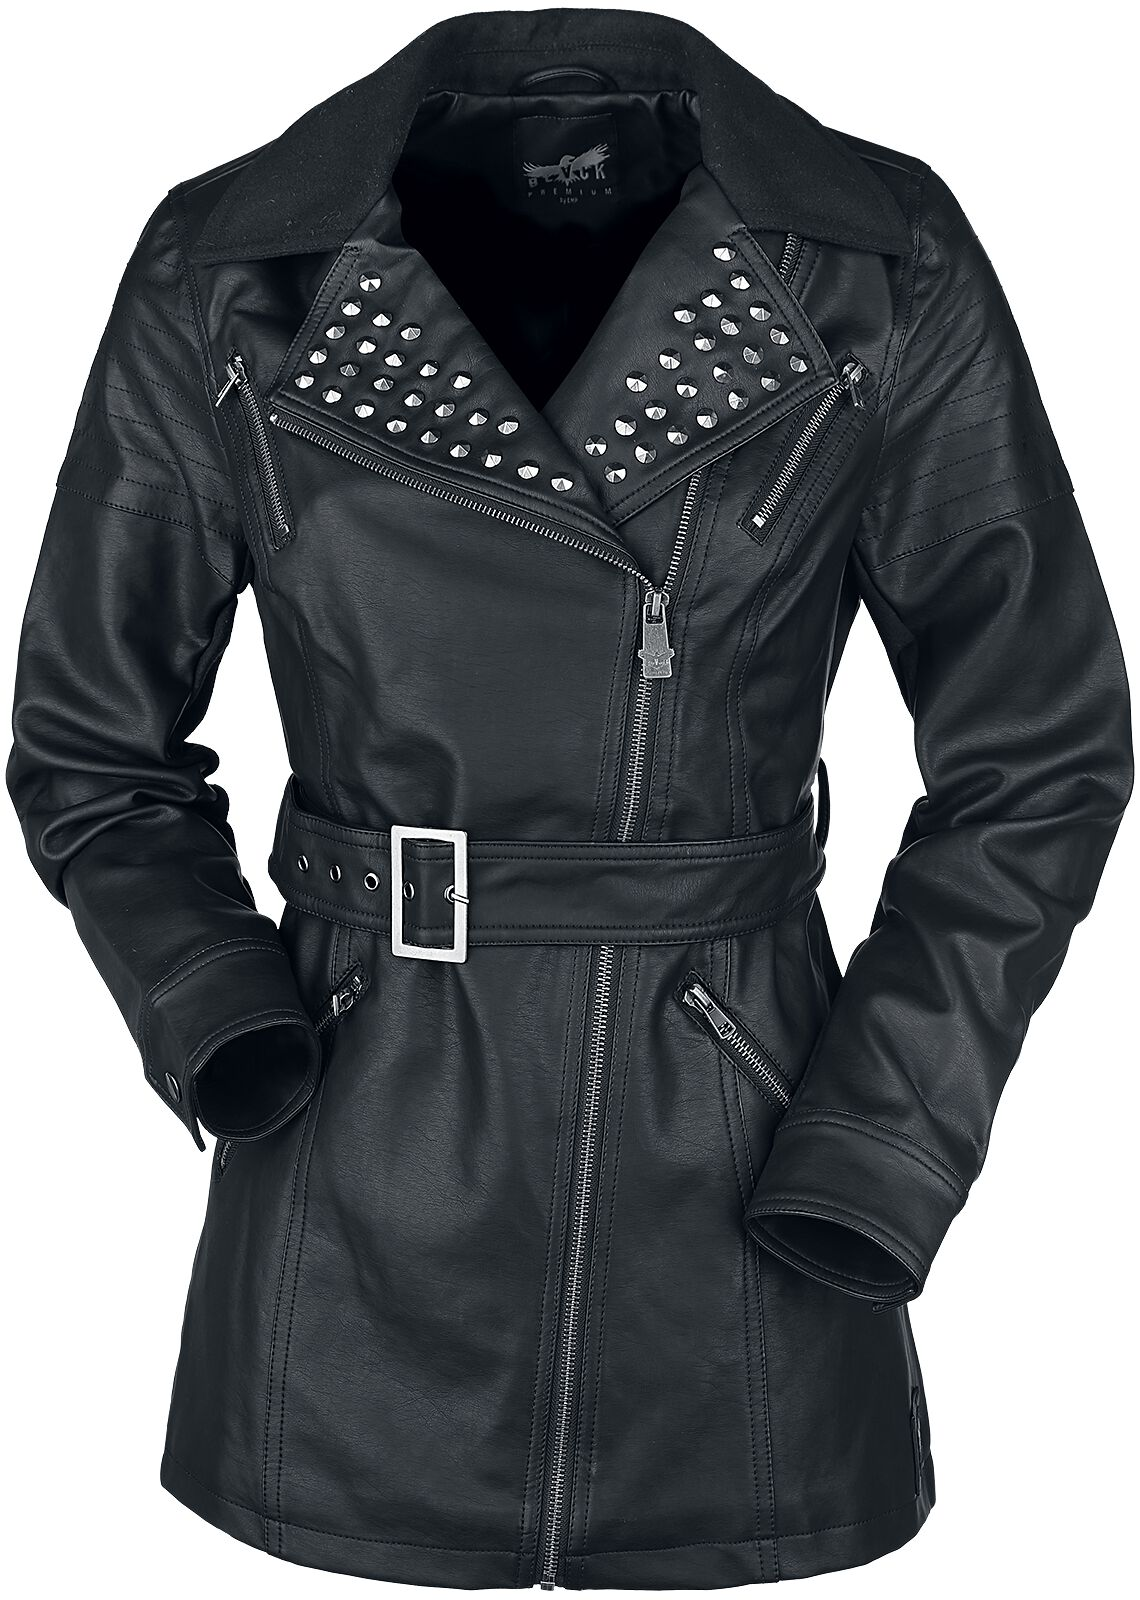 Jacken für Frauen - Black Premium by EMP The Eternal Backstage Pass Girl Jacke schwarz  - Onlineshop EMP